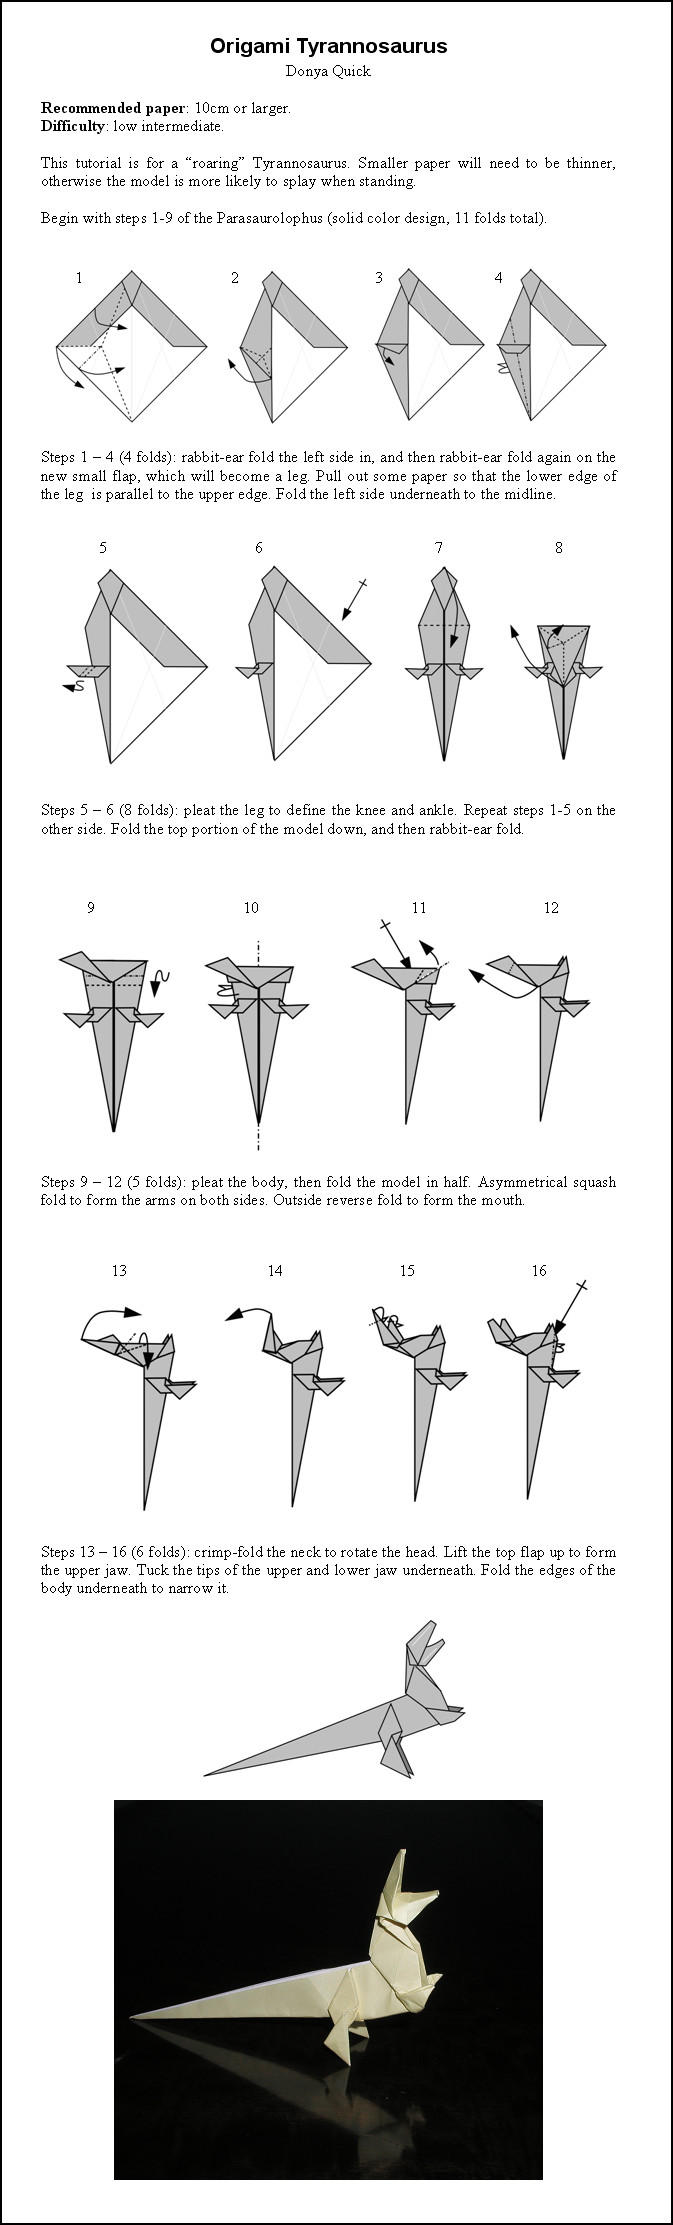 Origami Instructions By DonyaQuick On DeviantArt